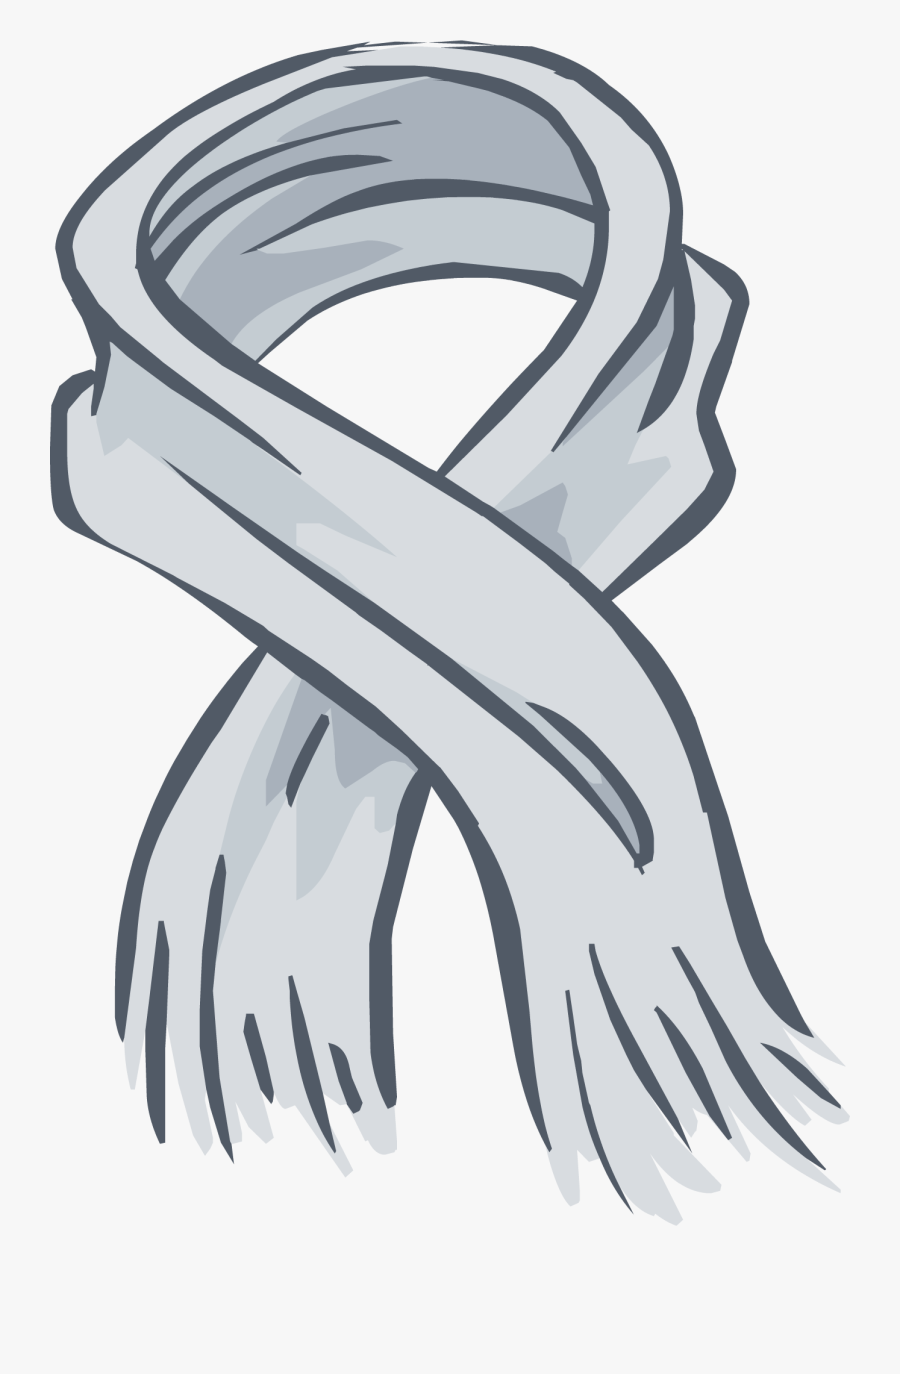 Heather Grey Scarf Png Image, Transparent Clipart